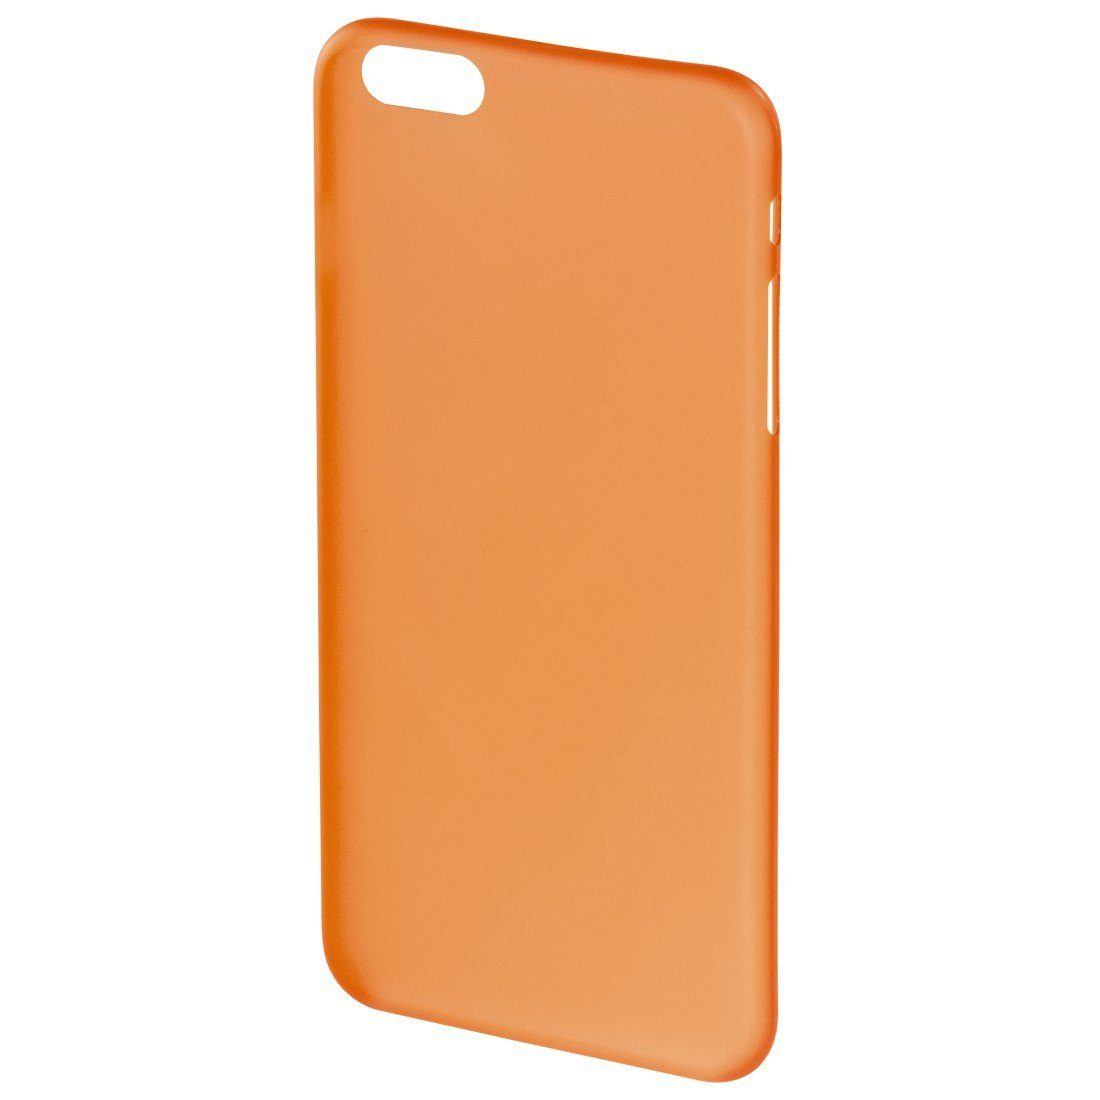 Hama Cover Ultra Slim für Apple iPhone 6 Plus/6s Plus, Orange